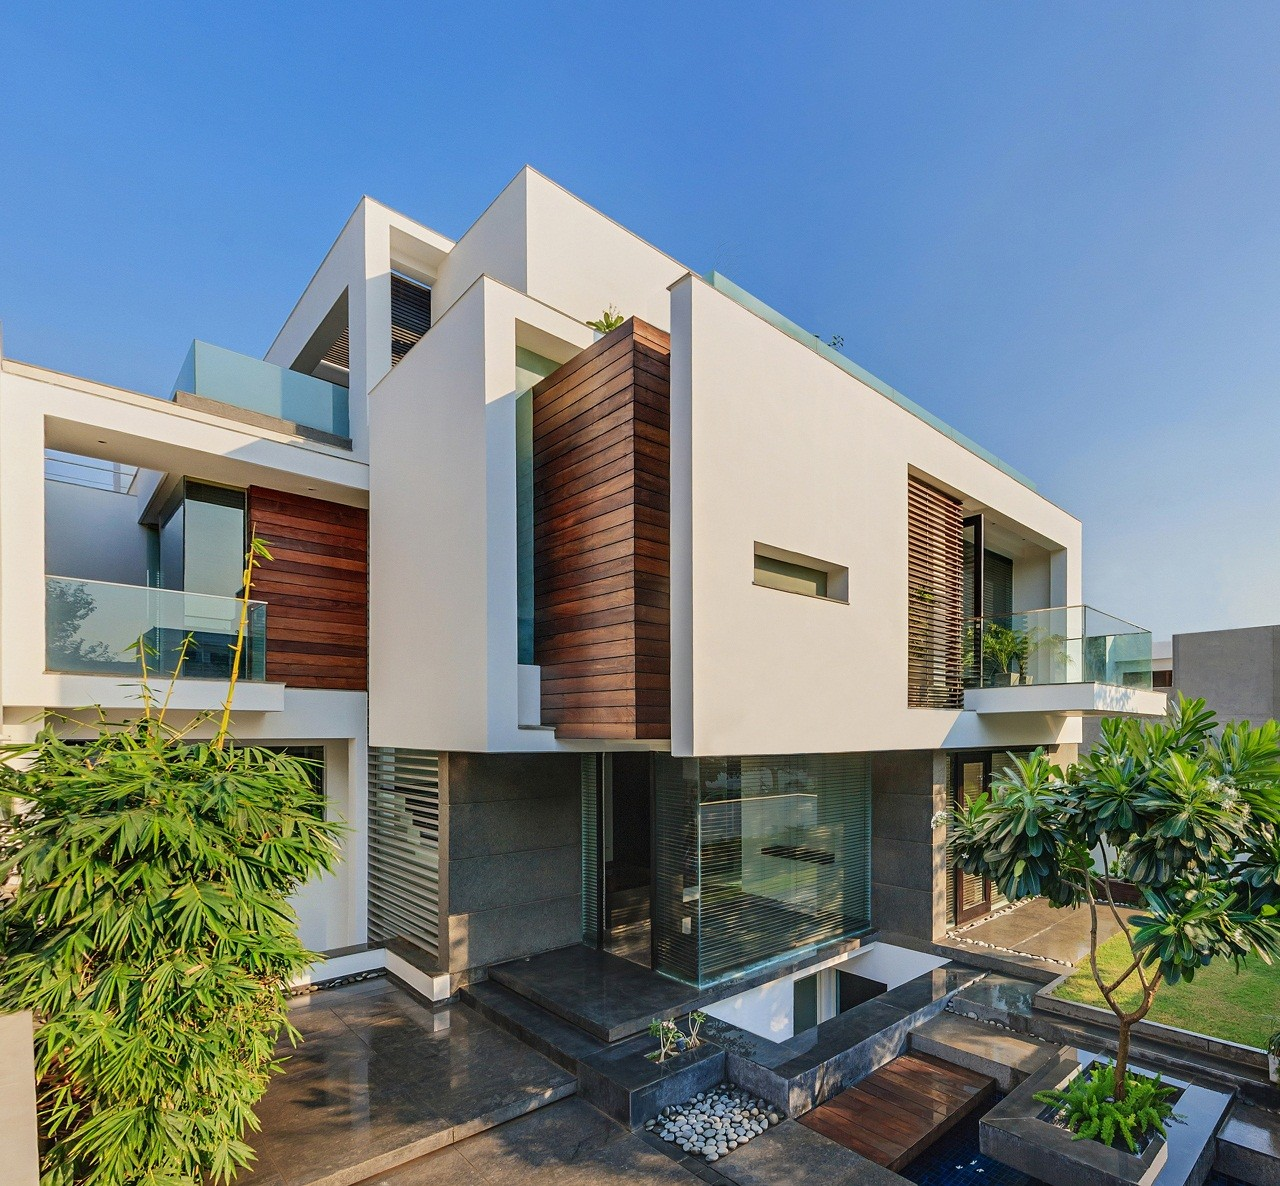 Modern Luxury House Design New Delhi Residence Pictures: The Overhang House / DADA & Partners